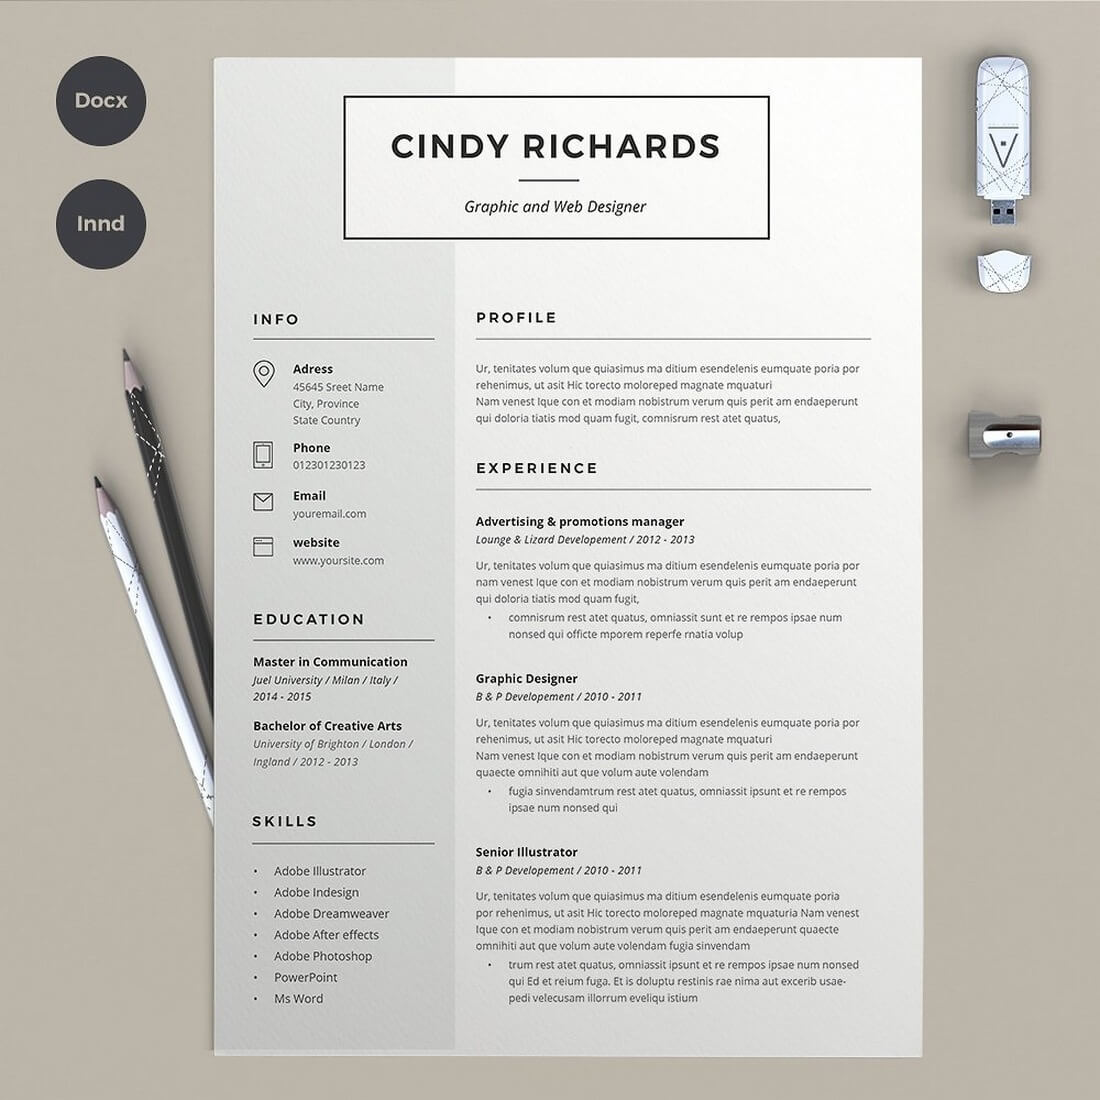 the best cv resume templates 50 examples ok huge a two page docx resume template a classical design also includes a set of icons and customizable adobe indesign files